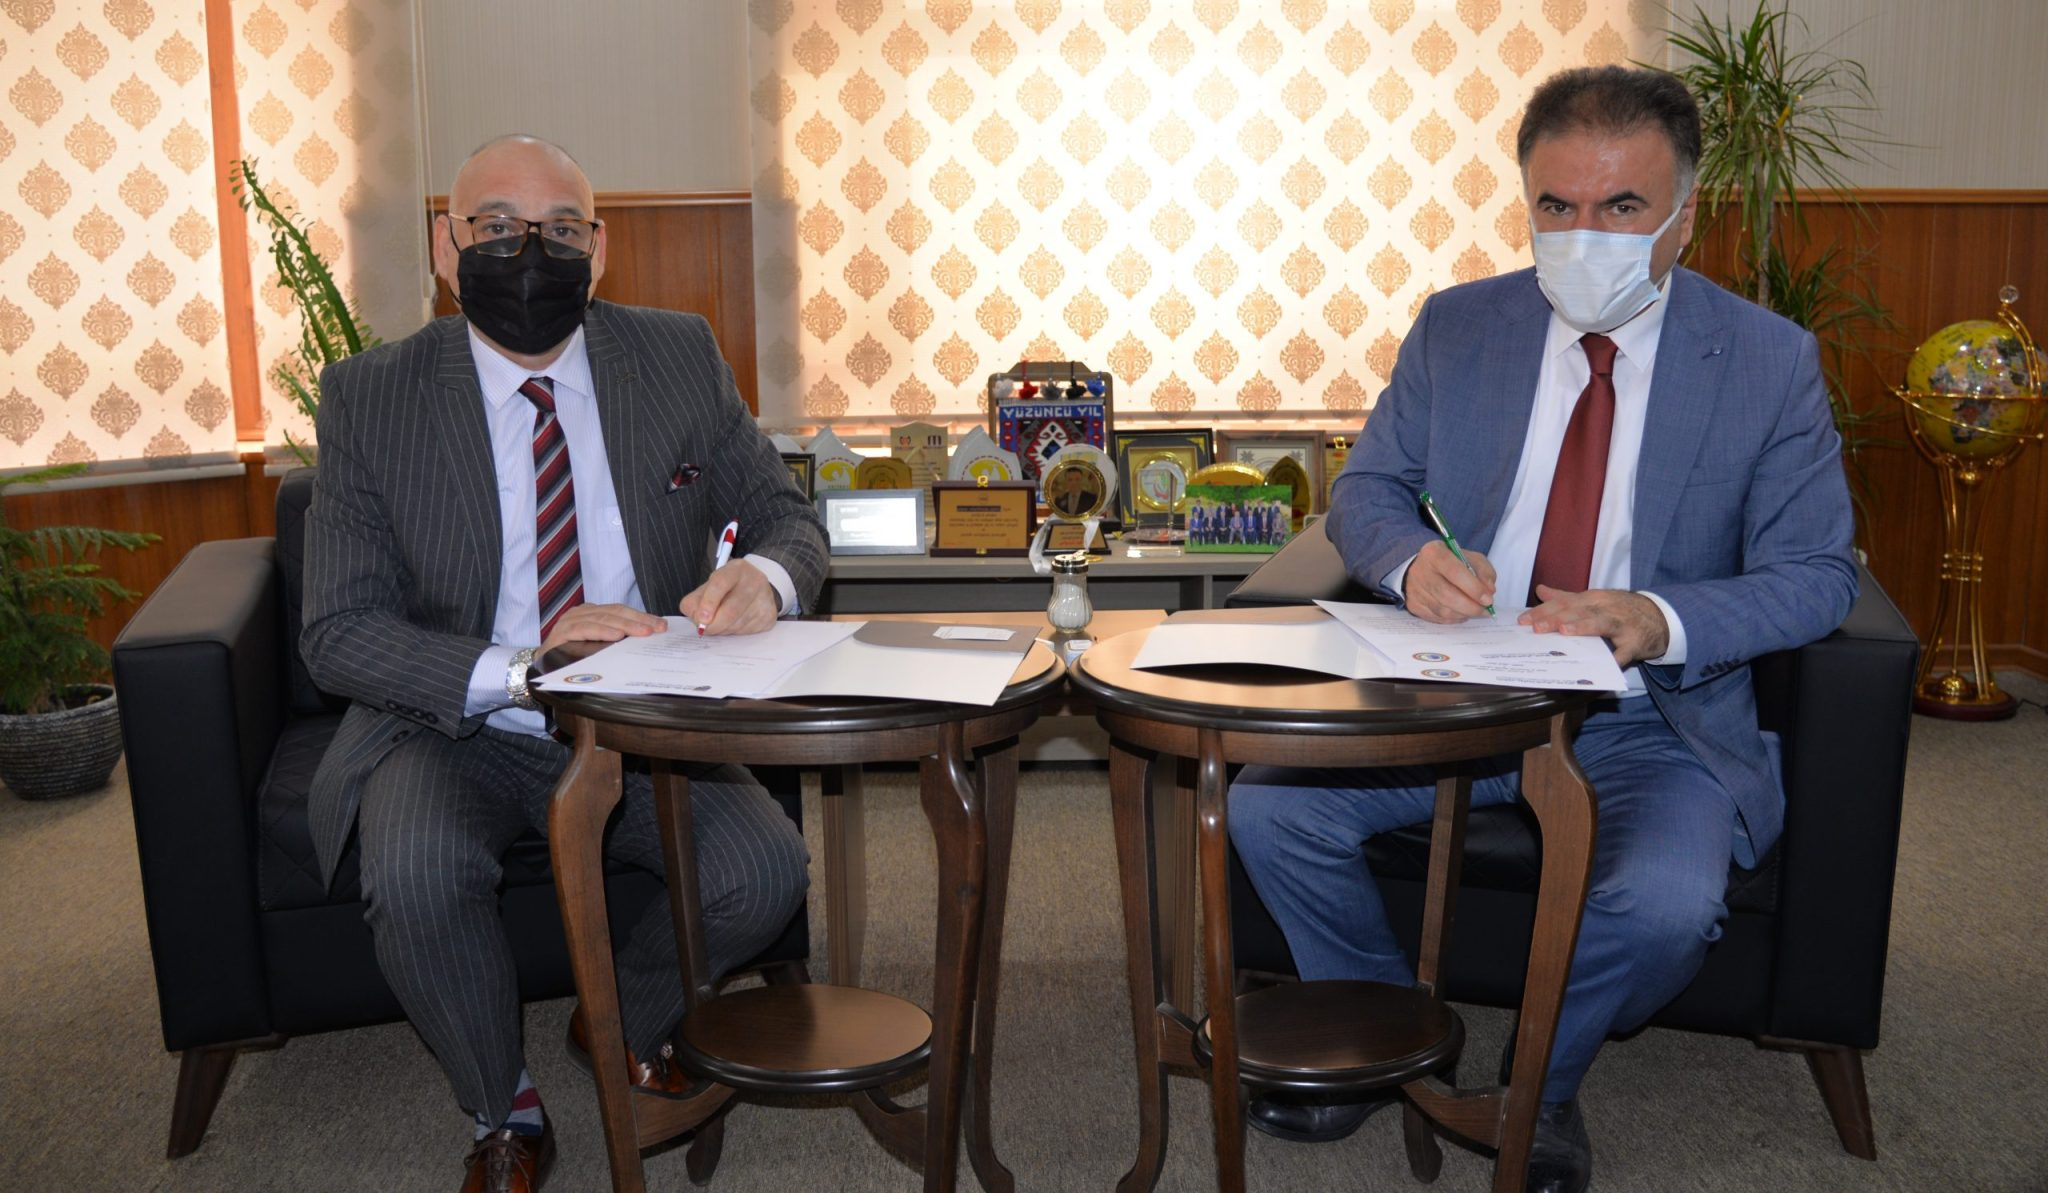 Erbil Polytechnic University And Arab Union For Development And Environment Signed A Memorandum Of Understanding